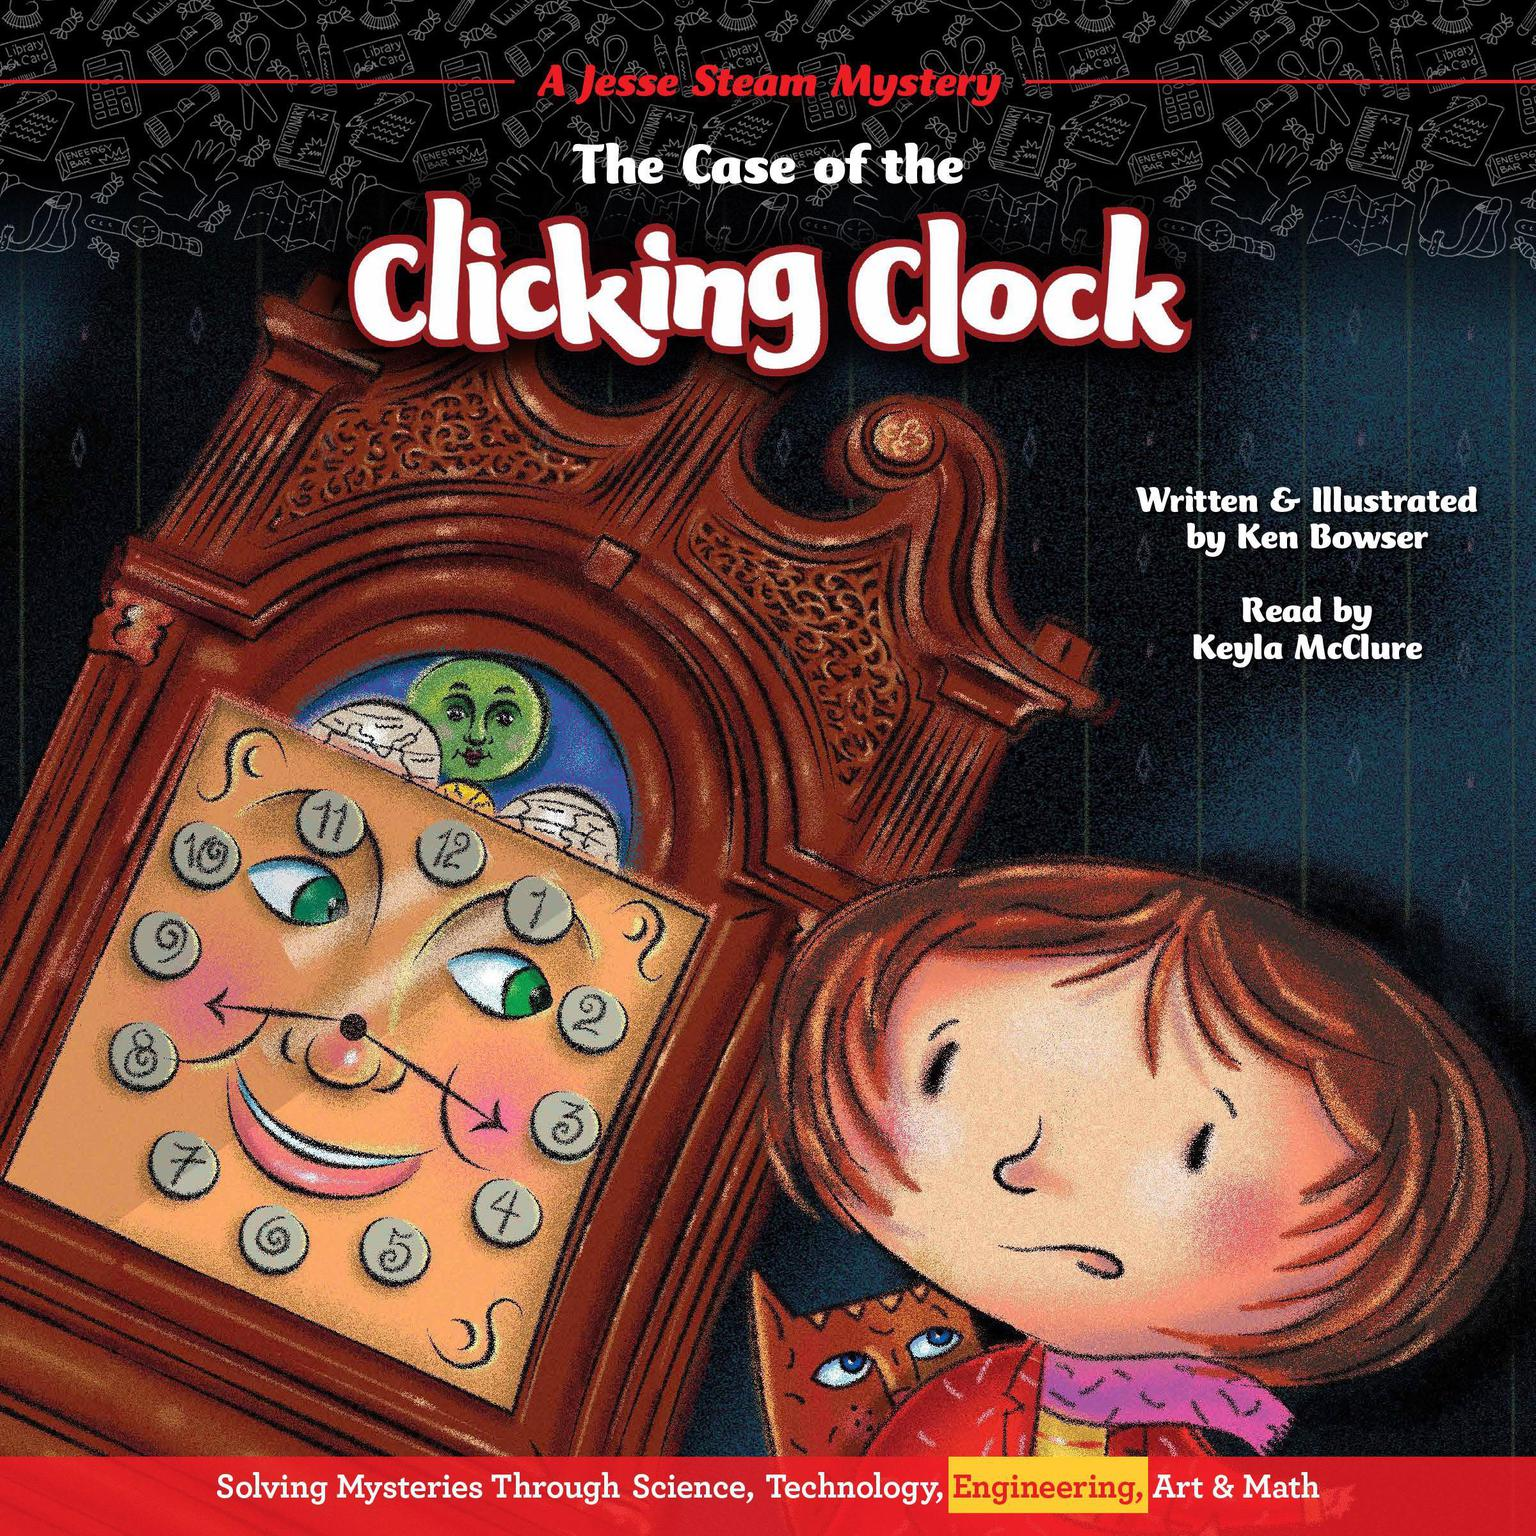 The Case of the Clicking Clock: A Jesse Steam Mystery solved through Engineering Audiobook, by Ken Bowser